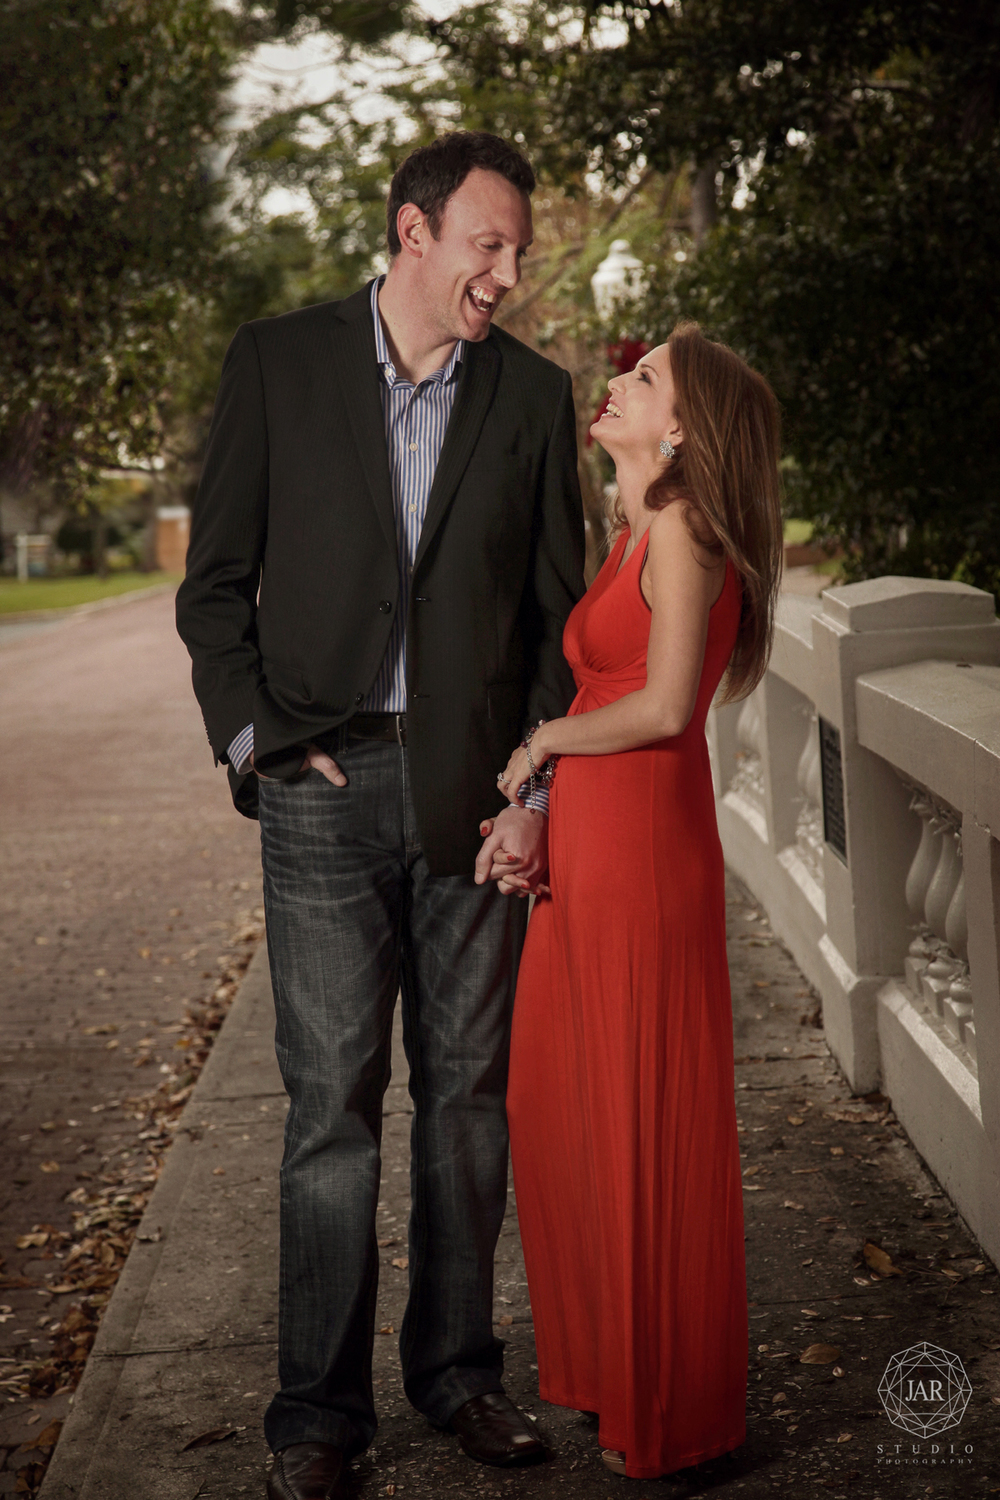 02-azalea-park-engagement-photographer-jarstudio.jpg